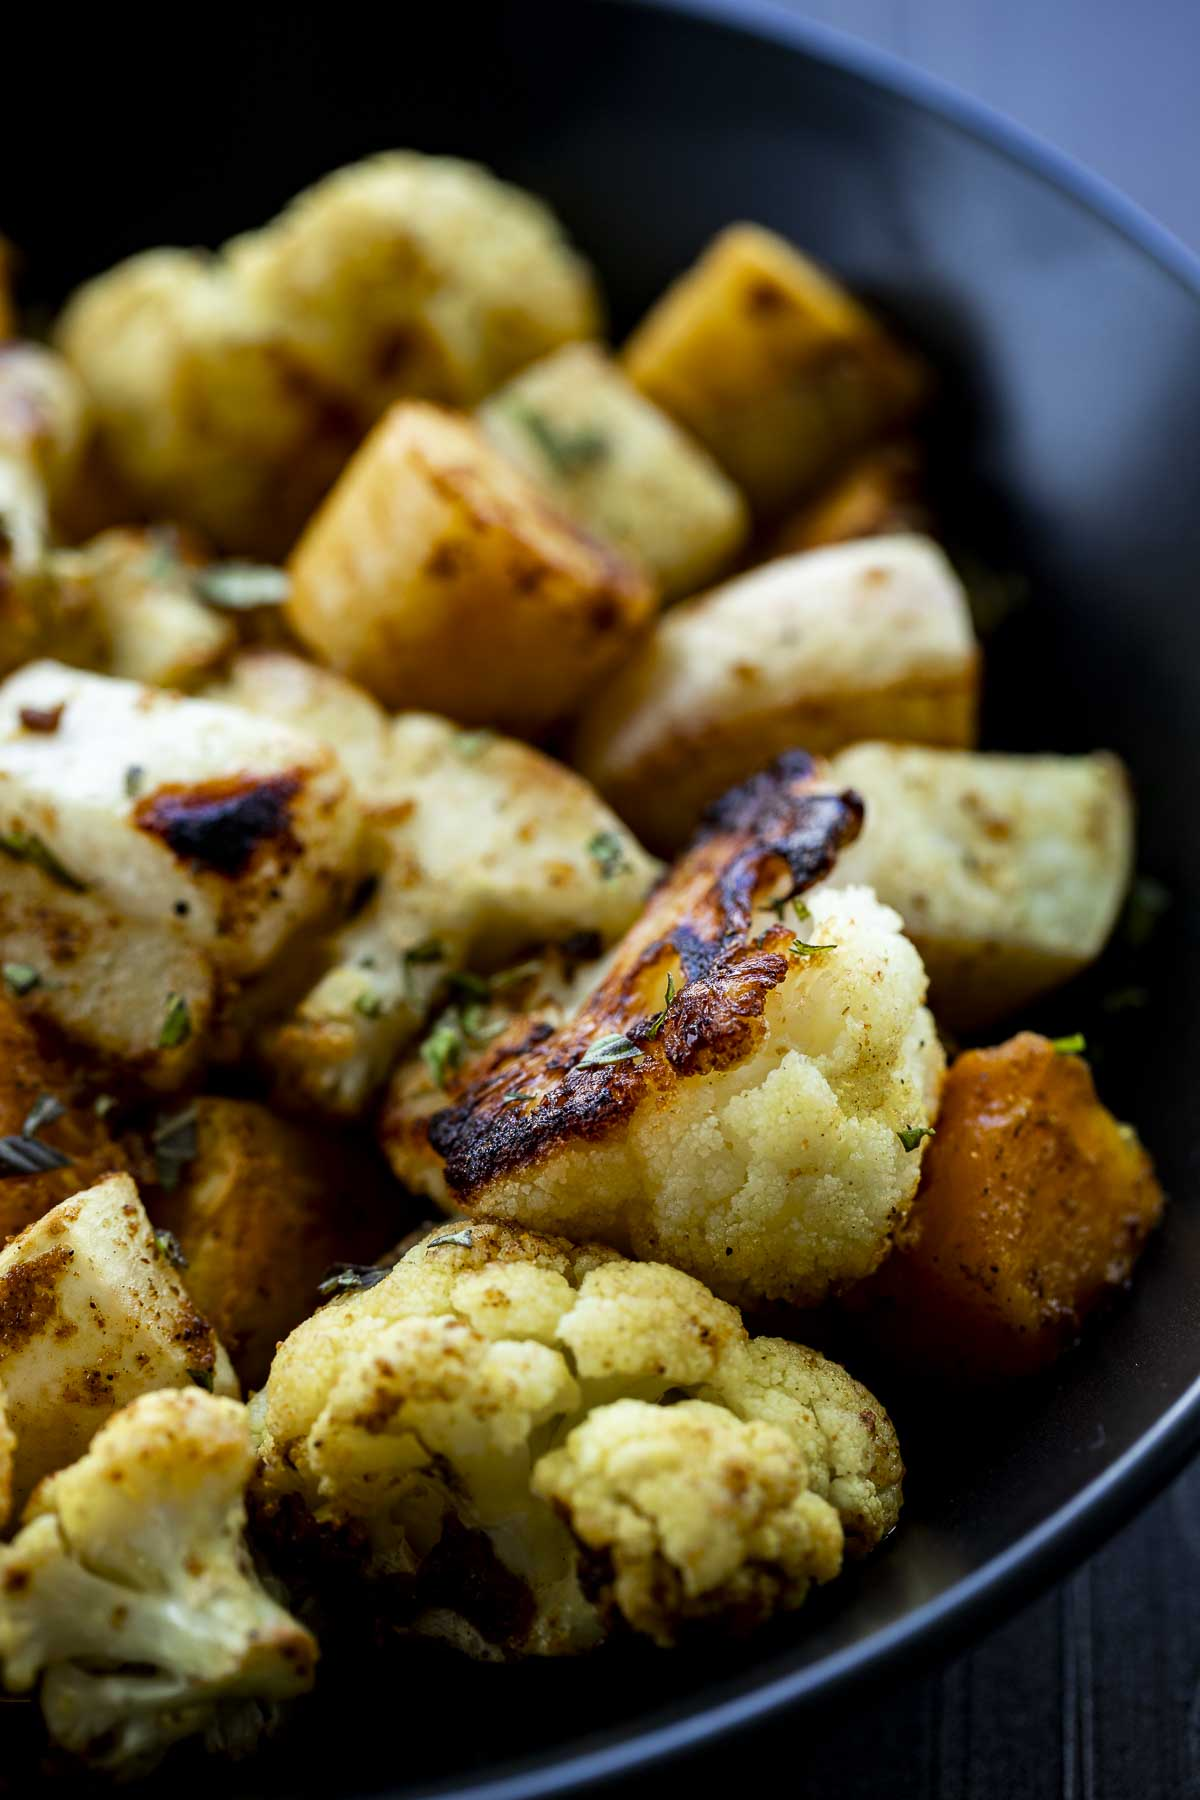 caramelzied piece of roasted cauliflower in a bowl with other roasted vegetables